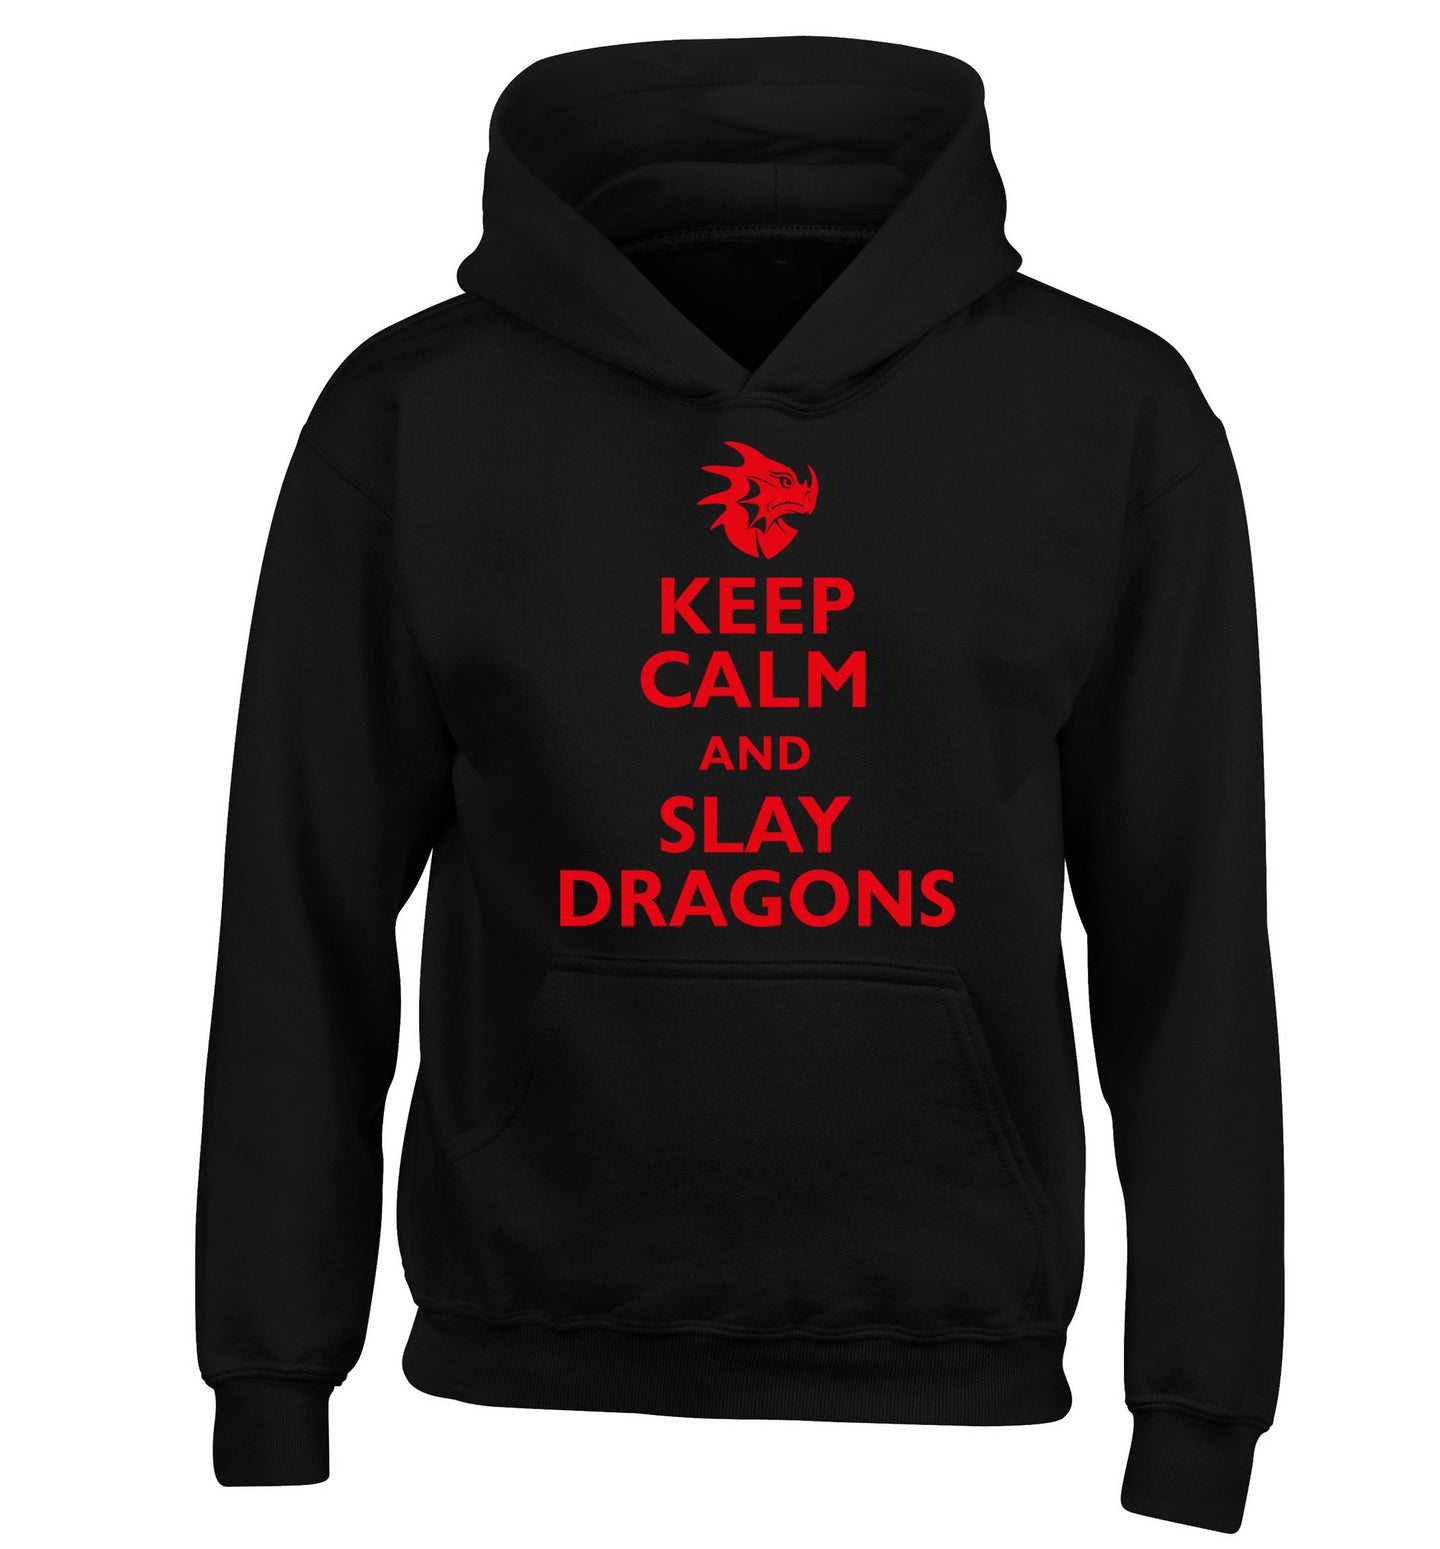 Keep calm and slay dragons children's black hoodie 12-14 Years